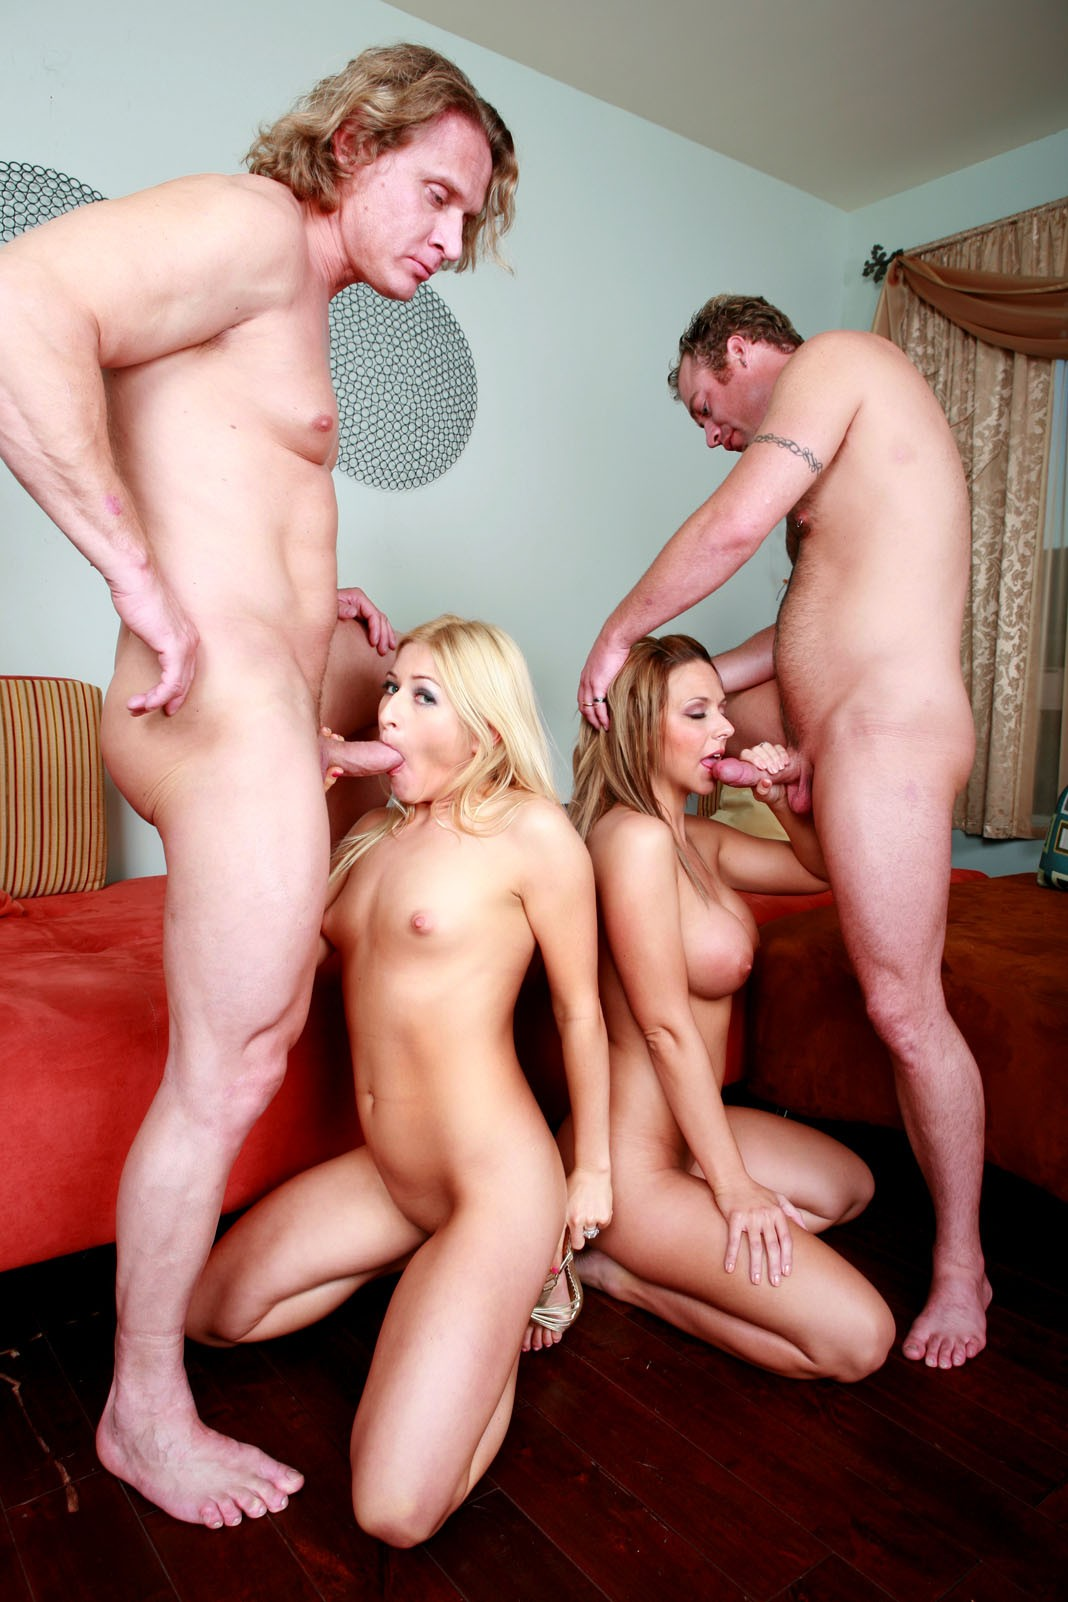 swinger women swap husbands